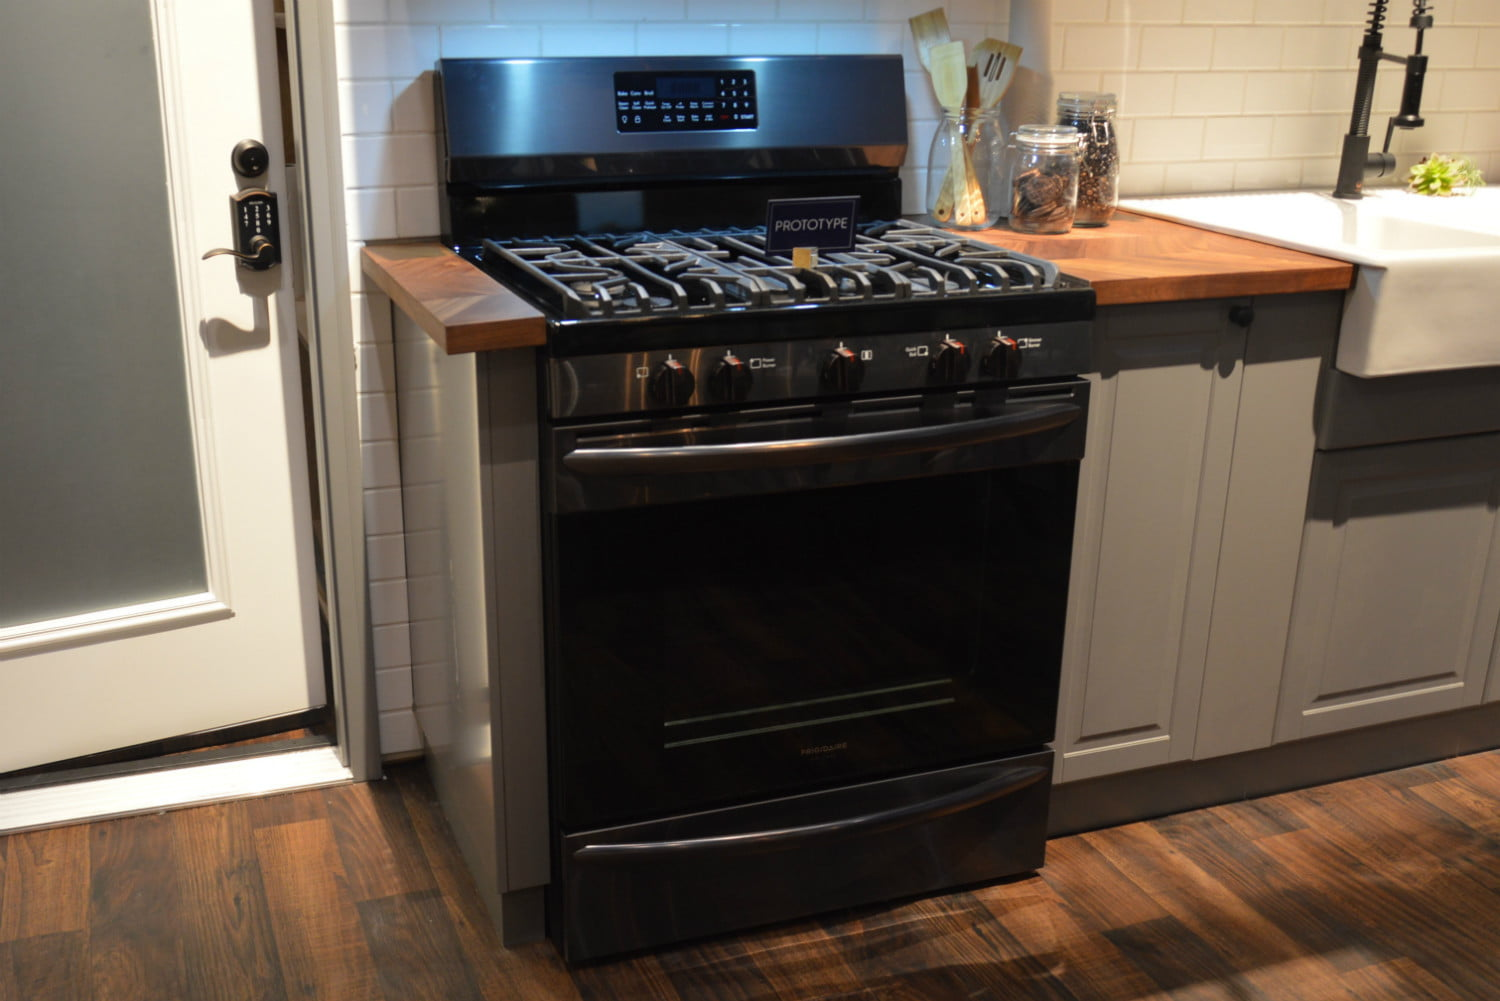 Ready to change the way you cook? Four appliance trends from KBIS 2017